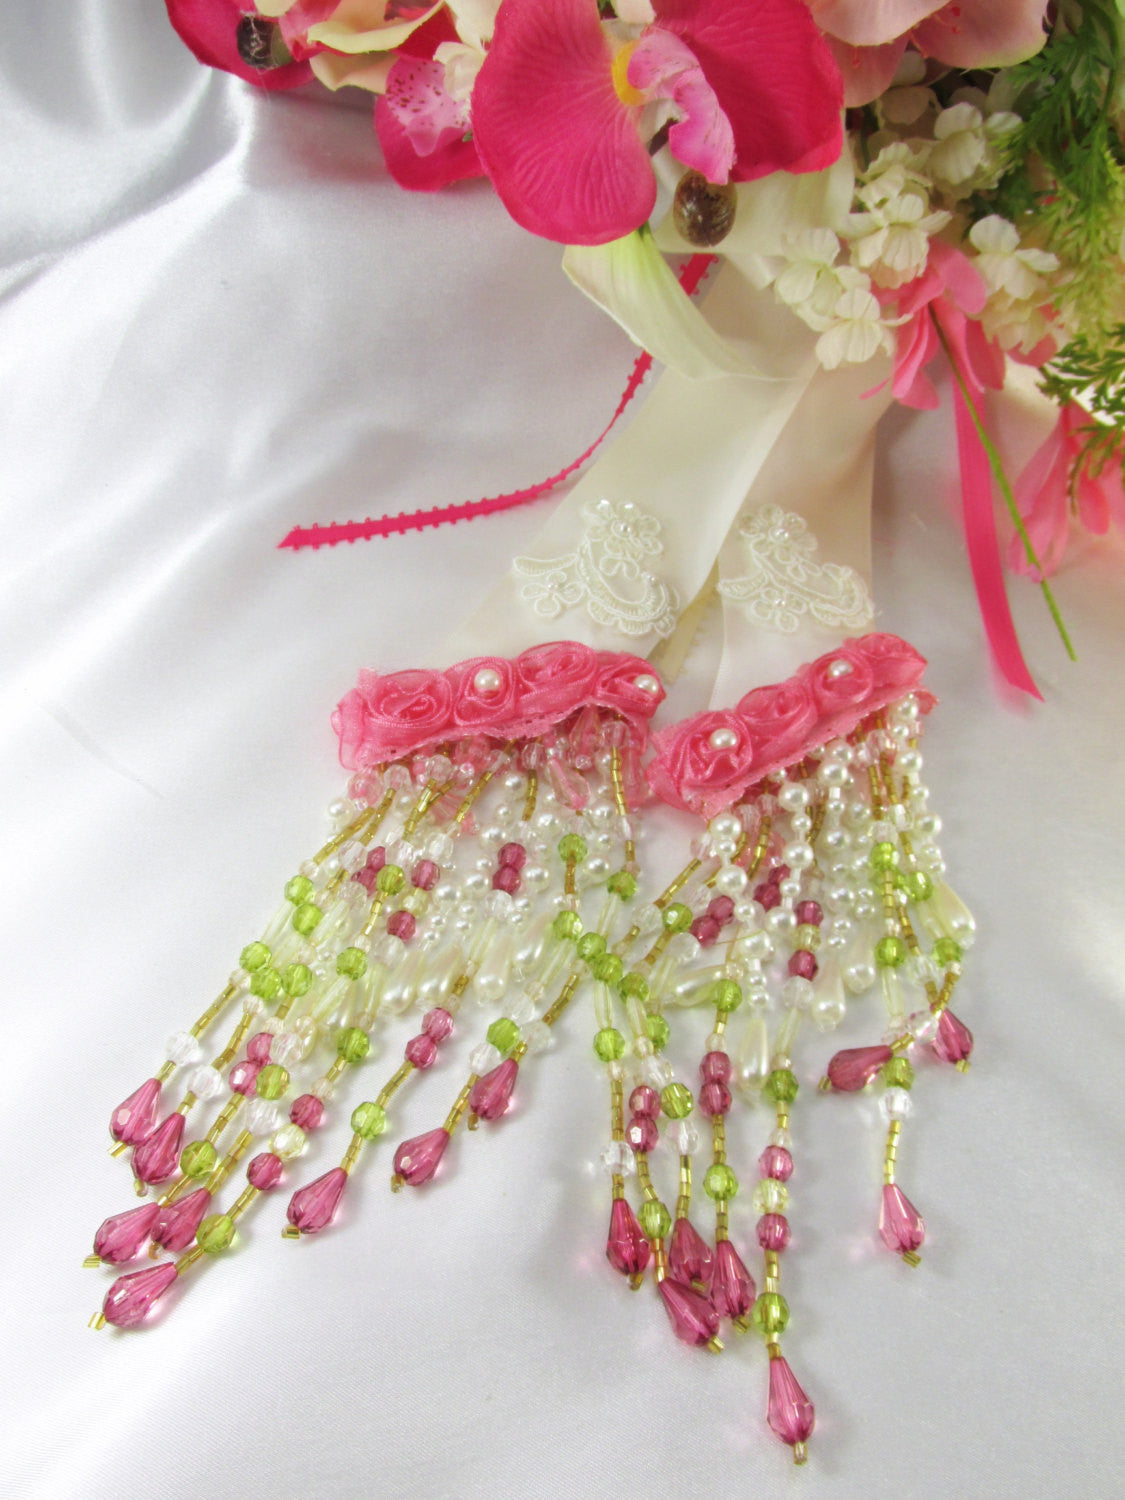 Azaleas and Cymbidium Orchids Pink and Ivory Victorian Cascading Bridal Brooch Bouquet - ready to ship - Odyssey Creations